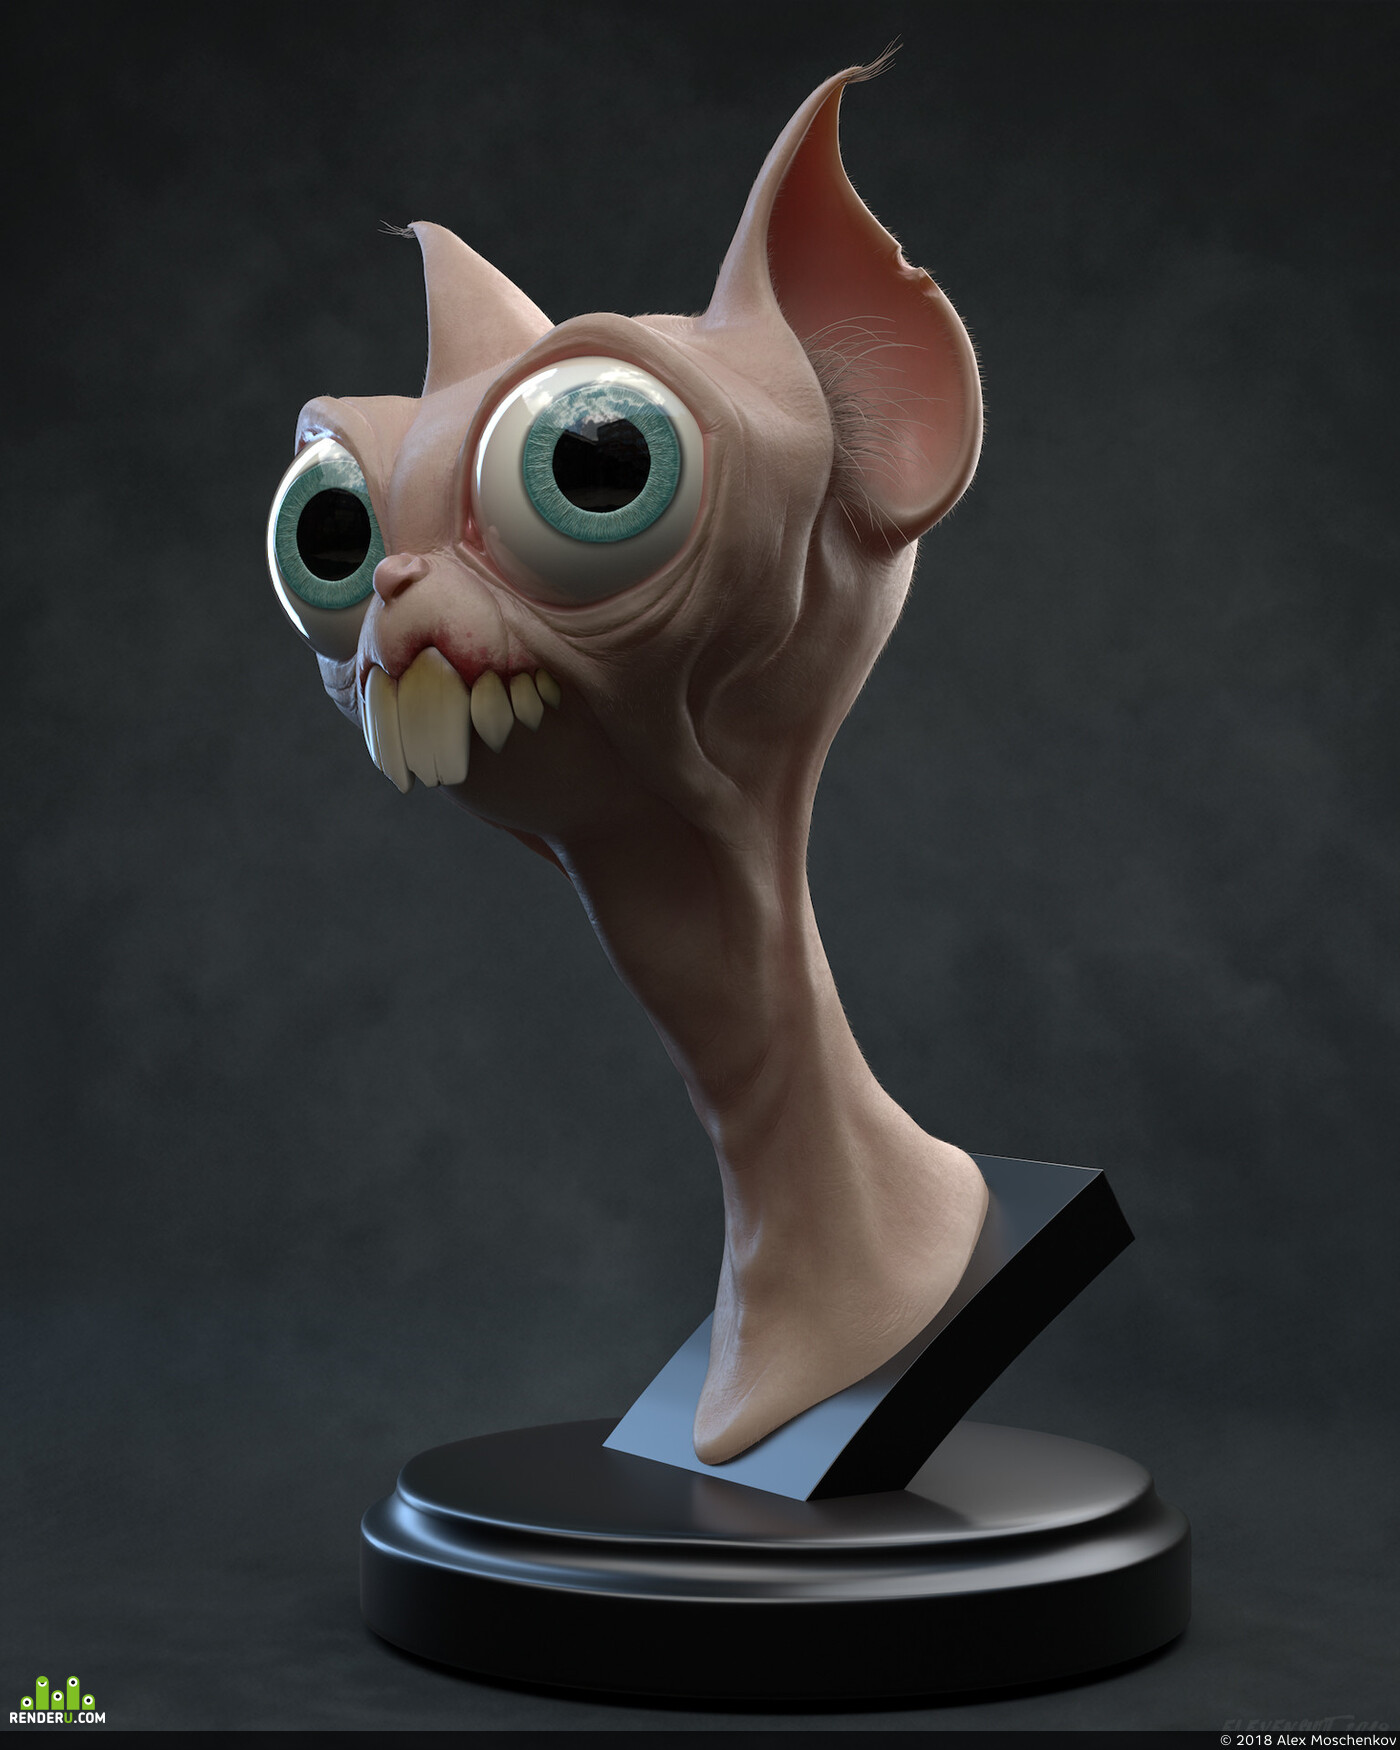 cat, creature, Character, sculpting, ZBrush, squirrel, eyes, teeth, skin, statue